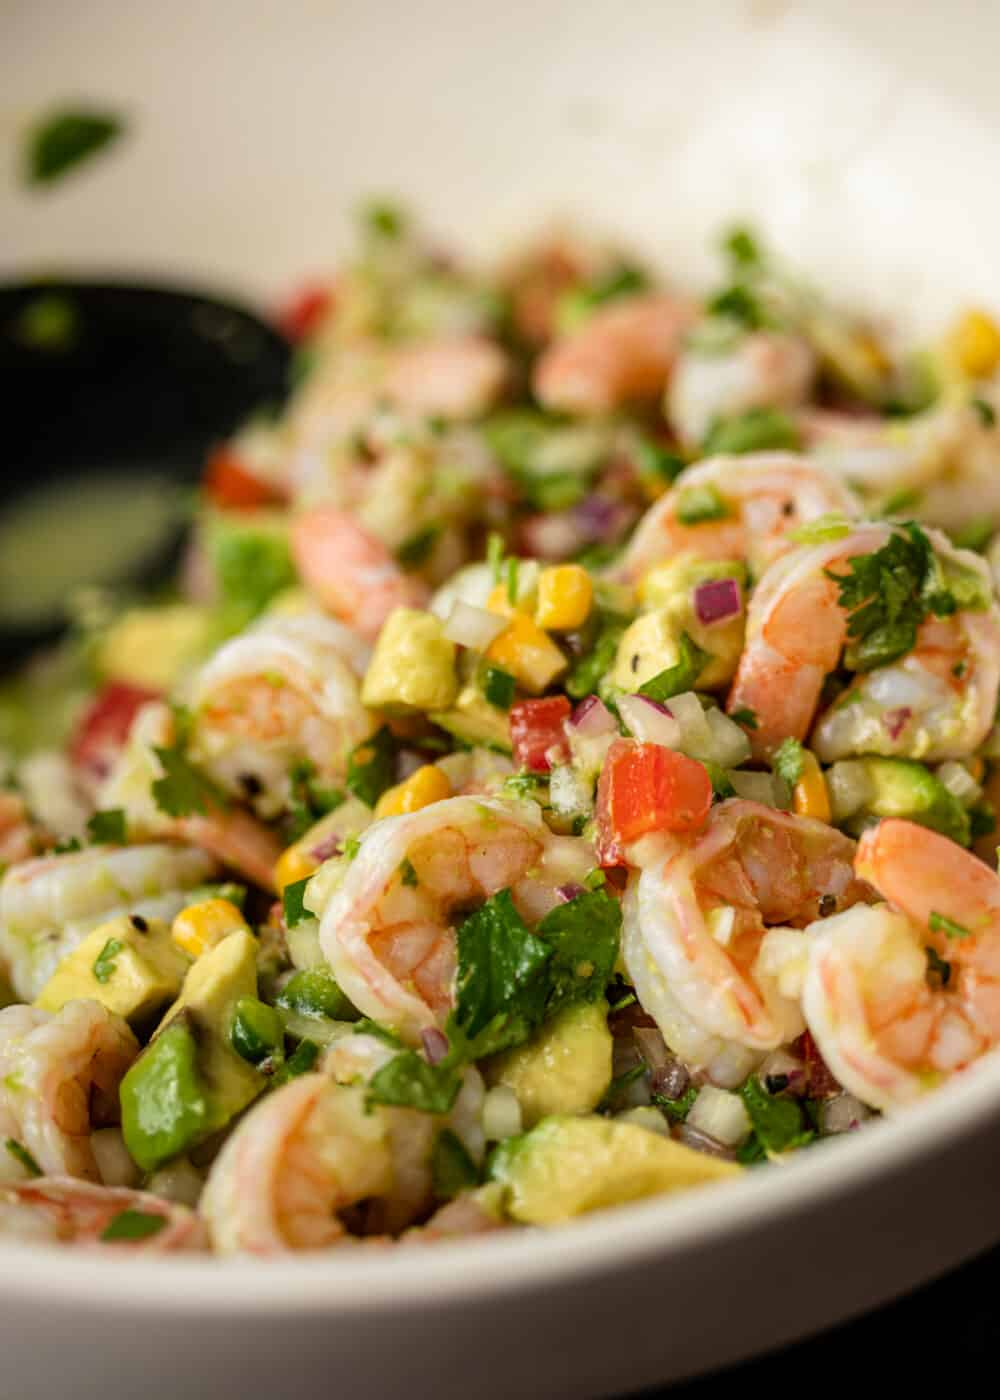 cold appetizer with shellfish, diced avocado, diced tomatoes and diced onions